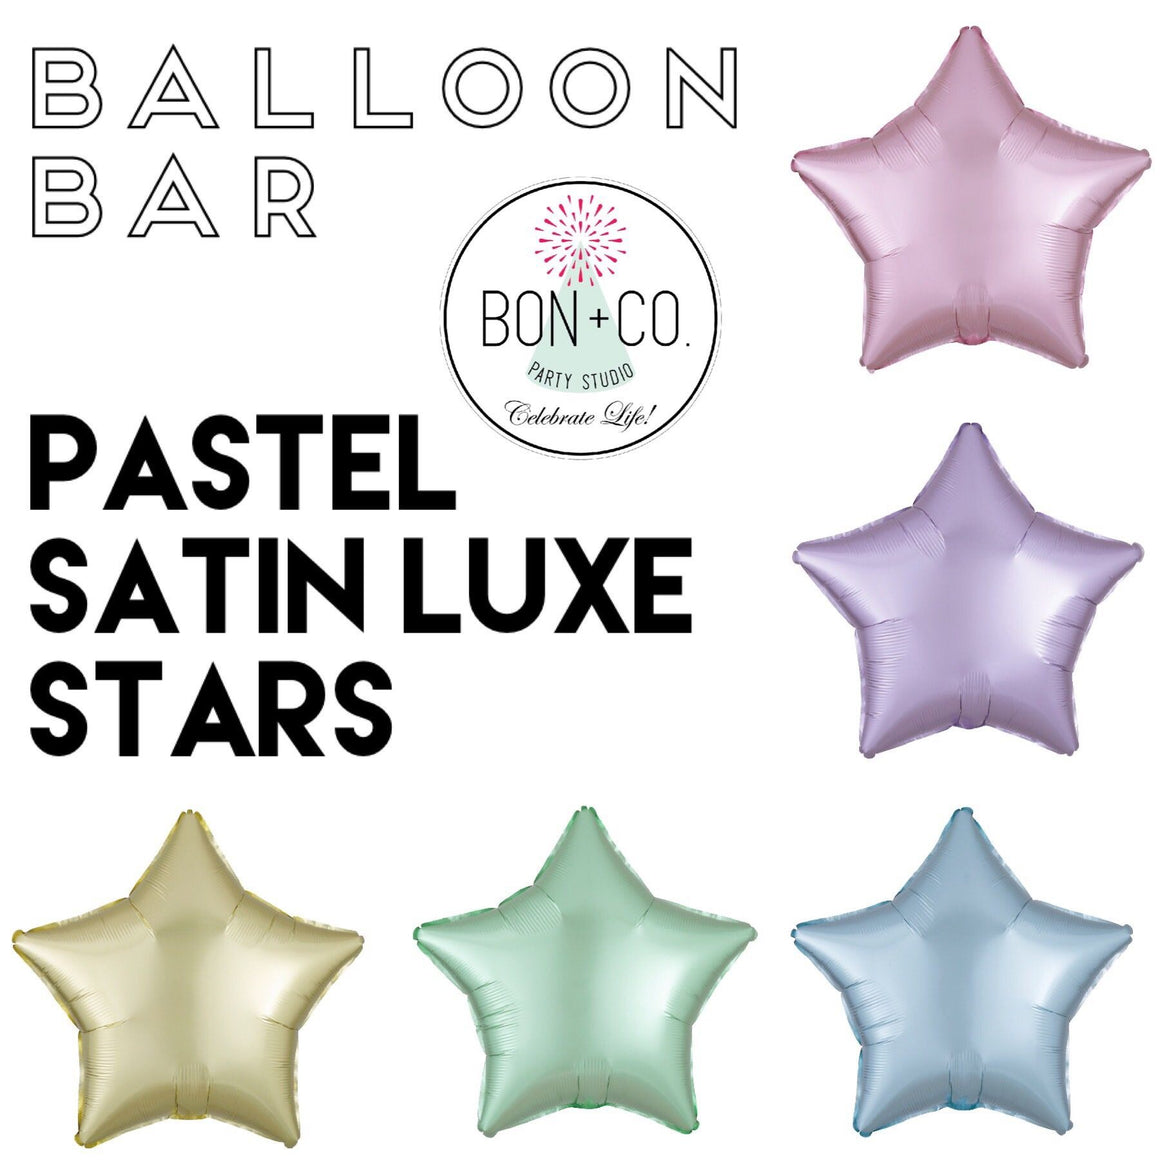 BALLOON BAR - STAR SATIN LUXE PASTEL, Balloons, Anagram - Bon + Co. Party Studio